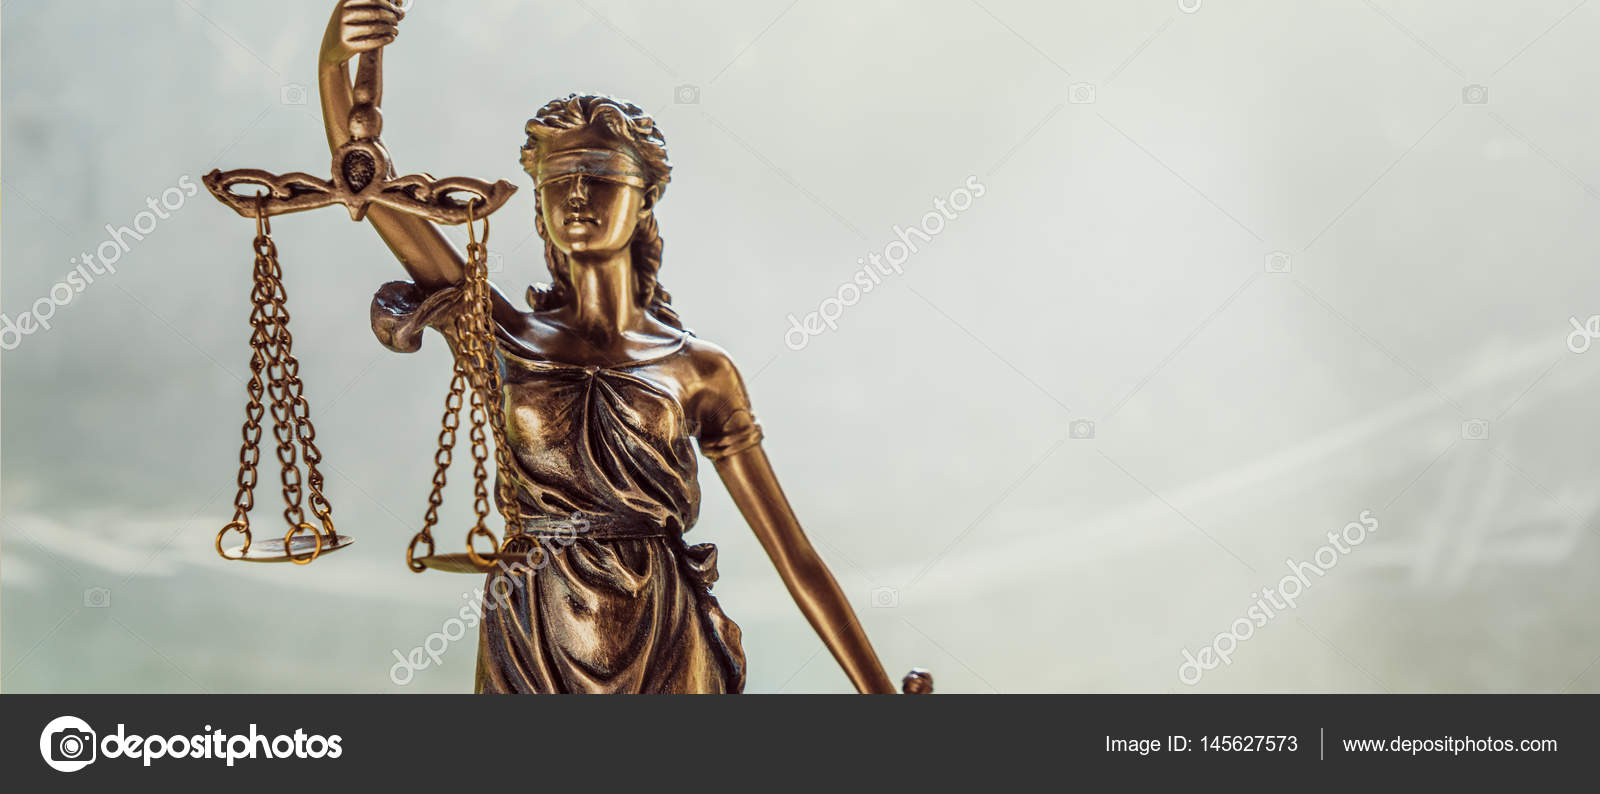 Lady justice statue stock photo aa w 145627573 lady justice statue stock photo buycottarizona